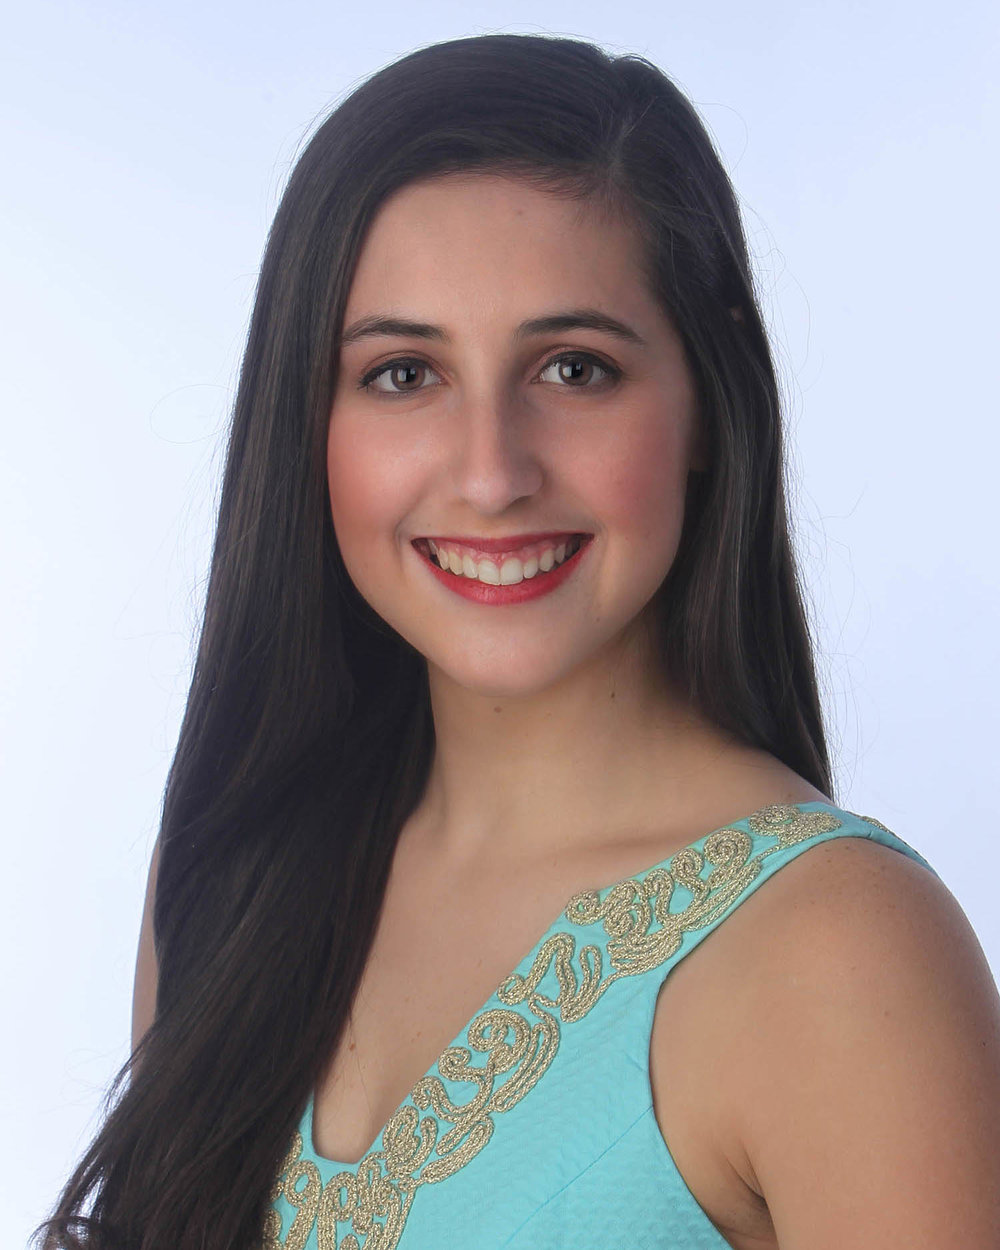 MORGAN JOHNSON    Crown City   Talent:  Acrobatic Dance   Platform:   Smiling For A Brighter Future